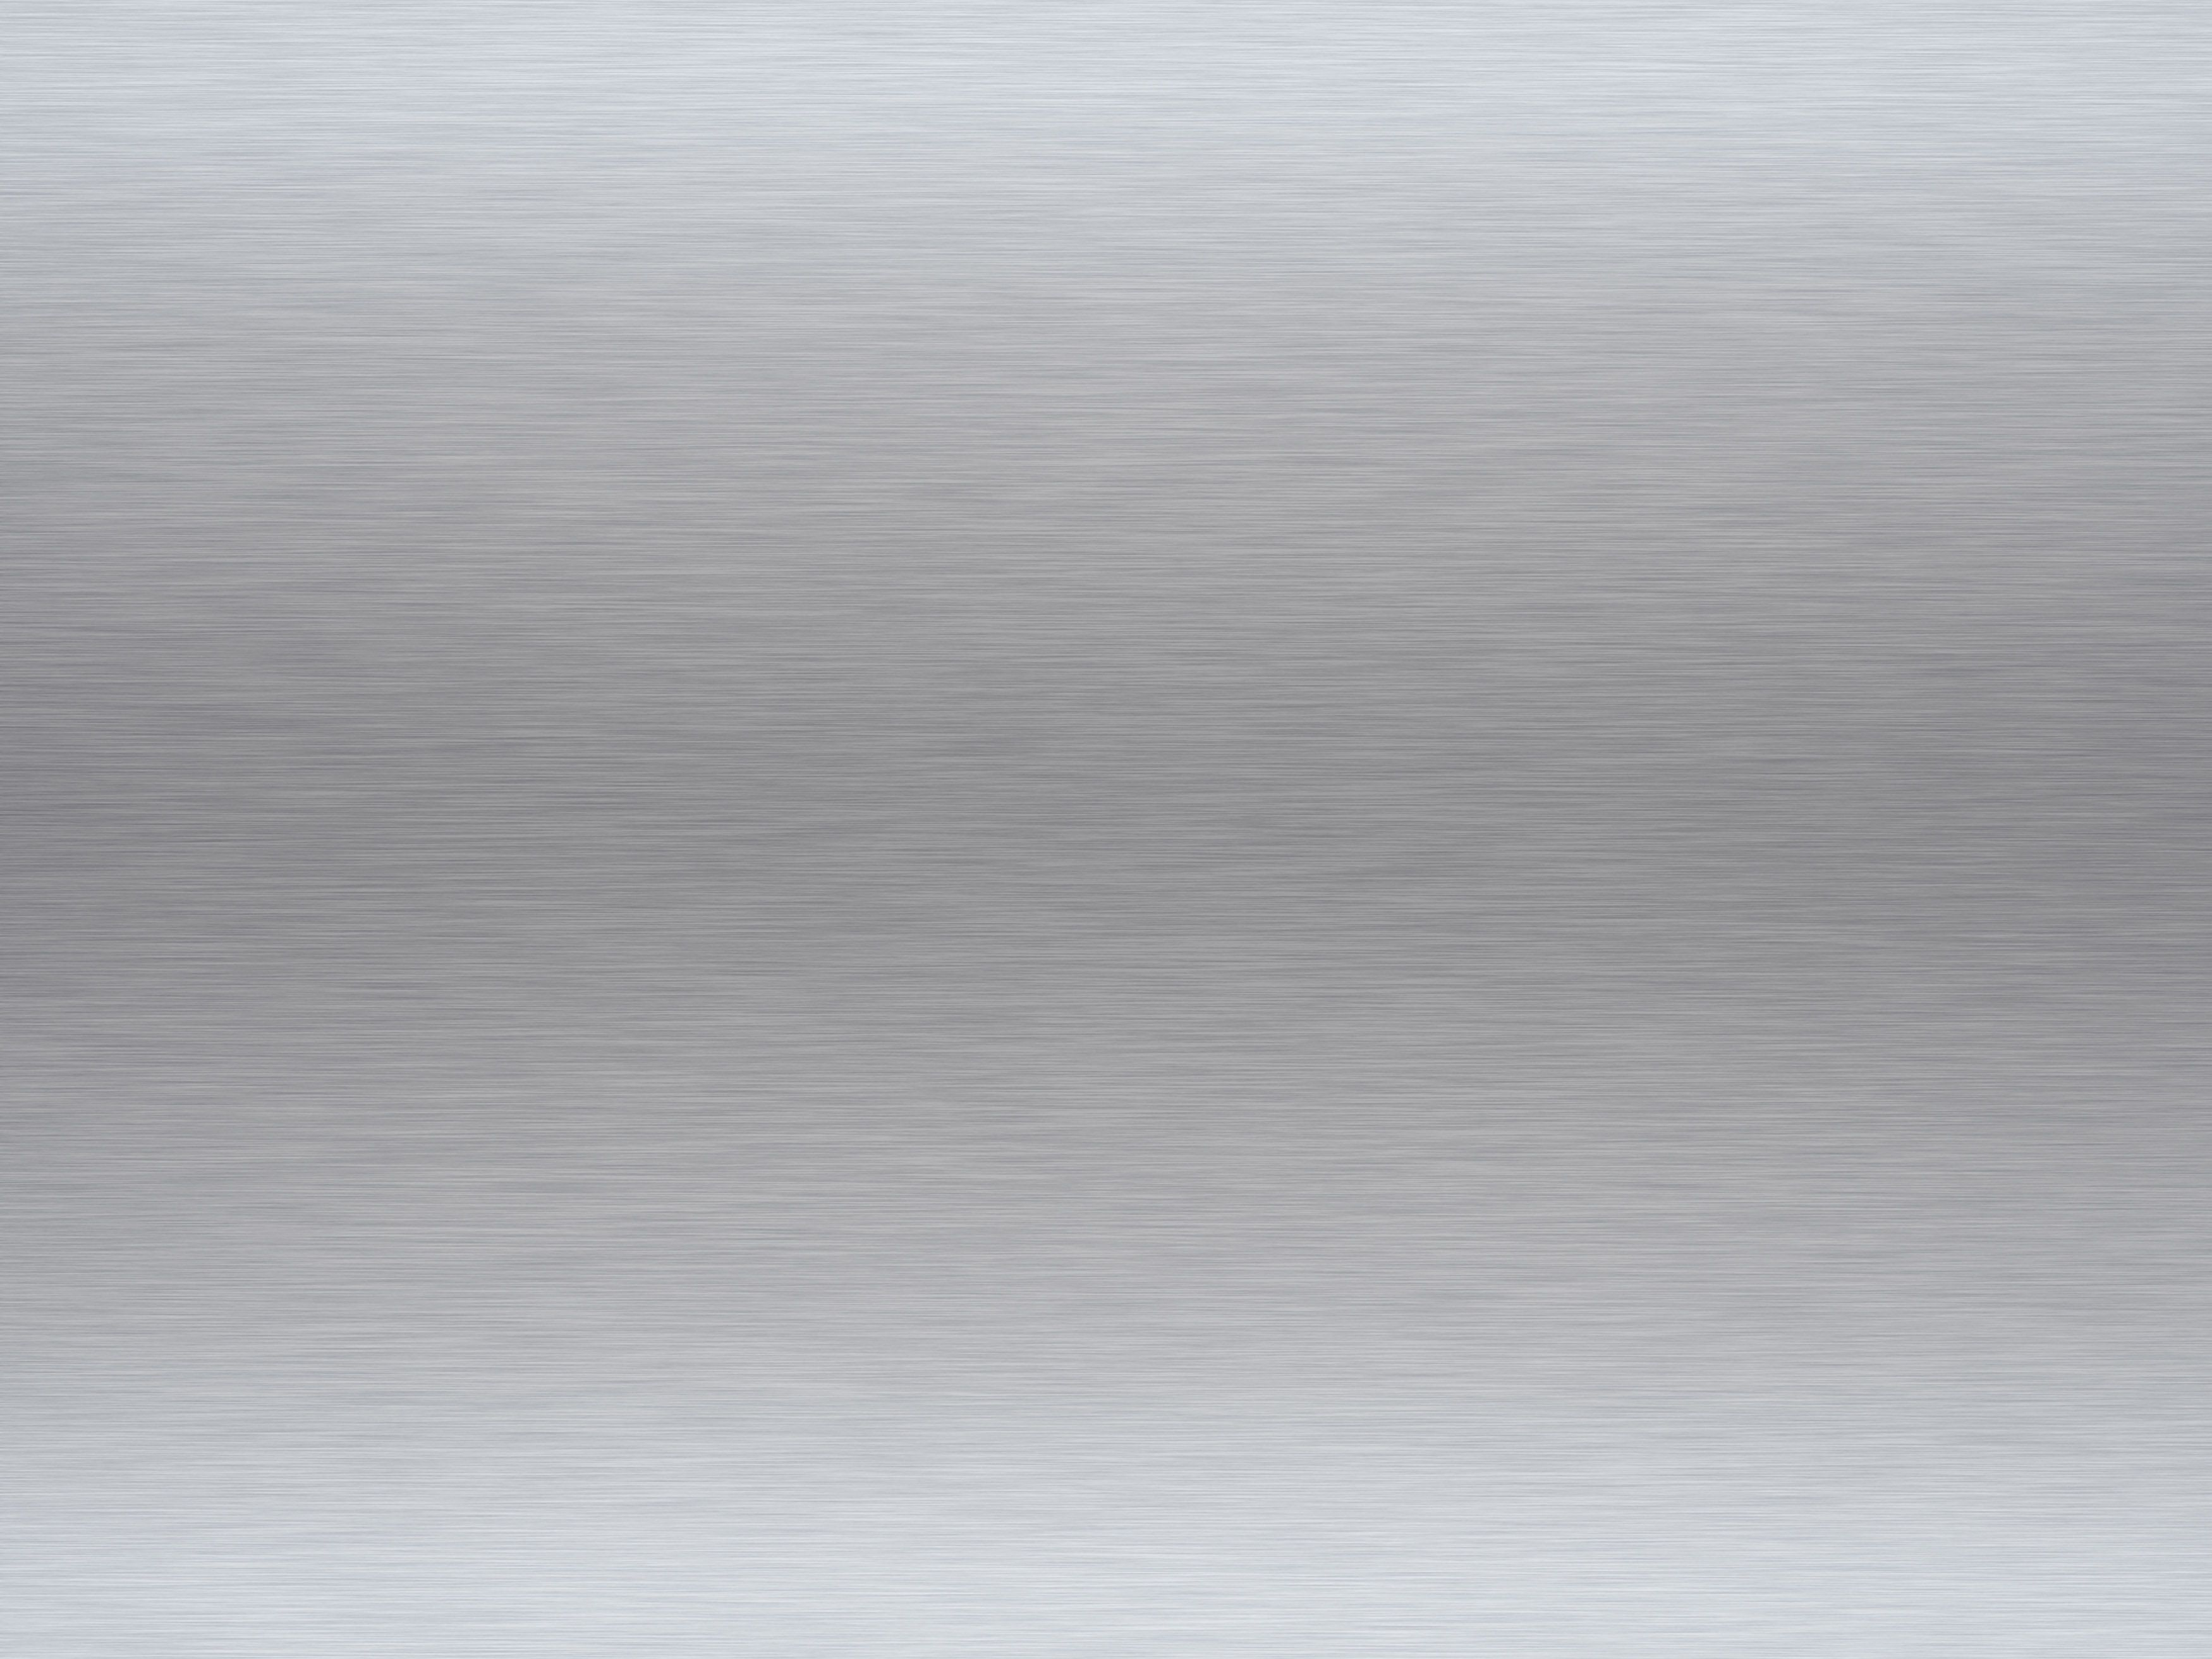 Rendered Polished And Brushed Silver Metal As Background Metal Texture Brushed Metal Texture Textured Background